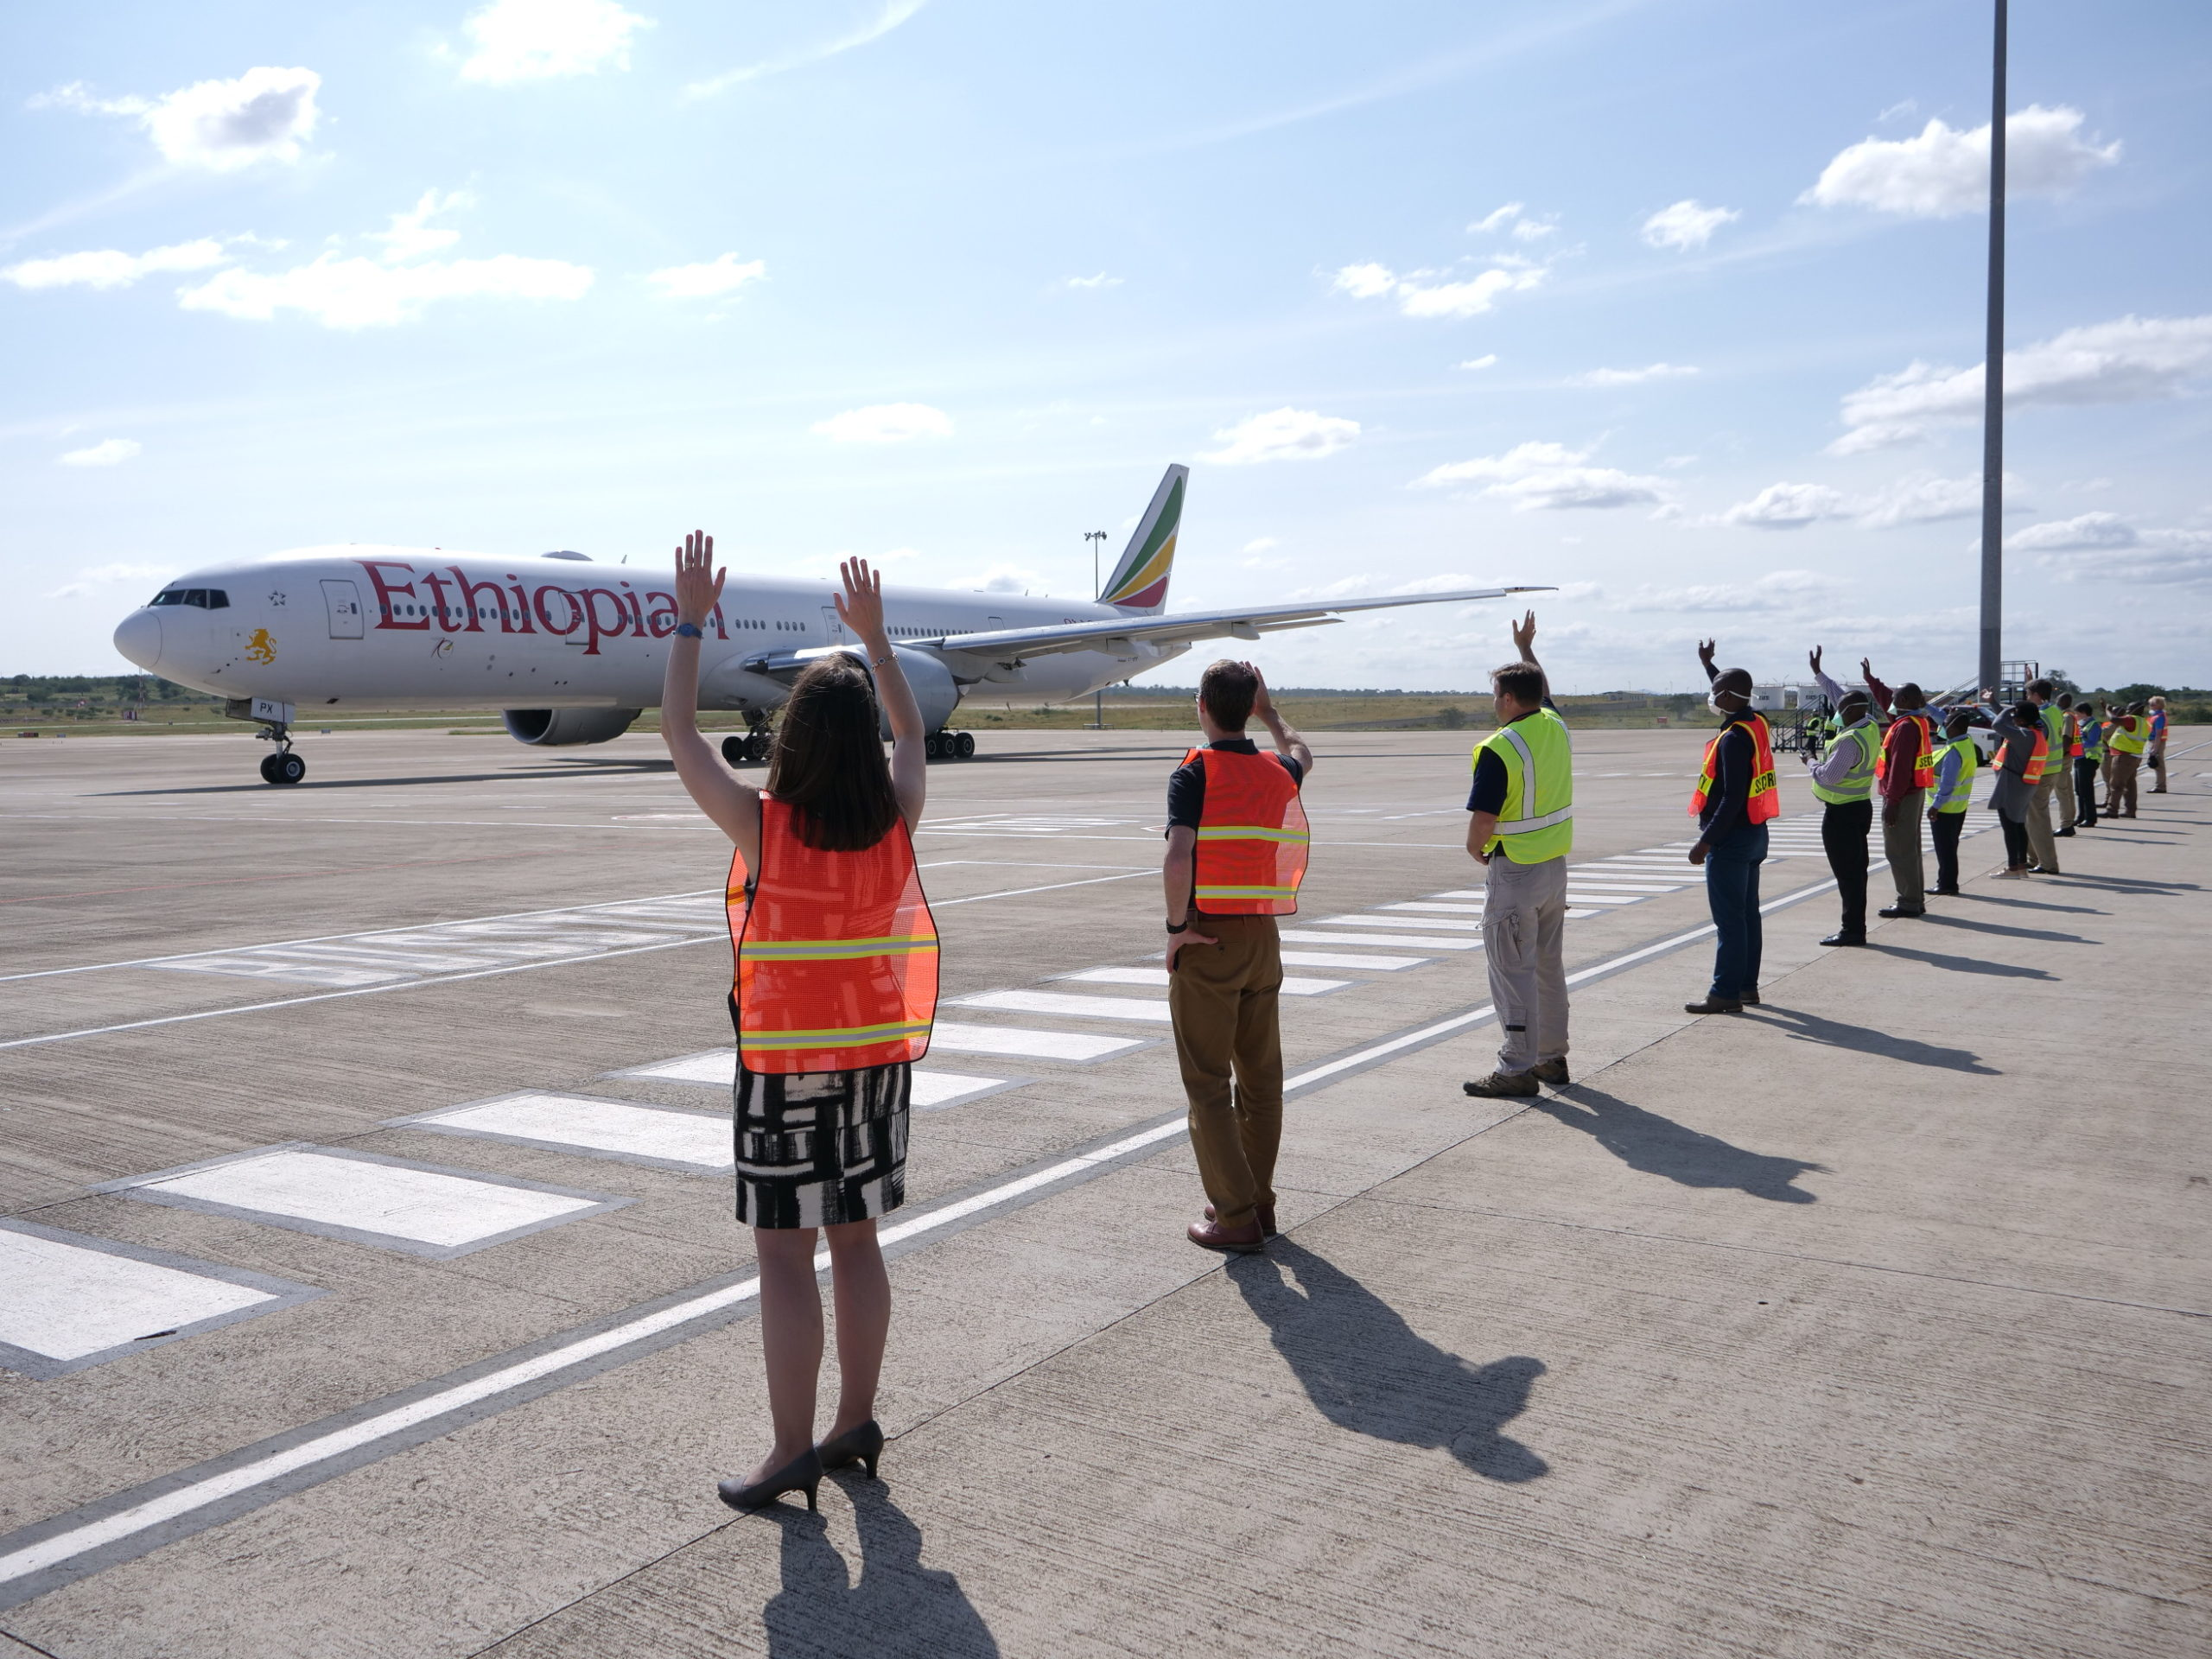 U.S. Embassy Eswatini coordinated with local officials and the U.S. Missions in South Africa, Botswana, and Lesotho to arrange a flight for more than 250 American citizens on April 10, 2020. The flight, a Boeing 777, is the largest airplane to ever take off from Eswatini's airport.